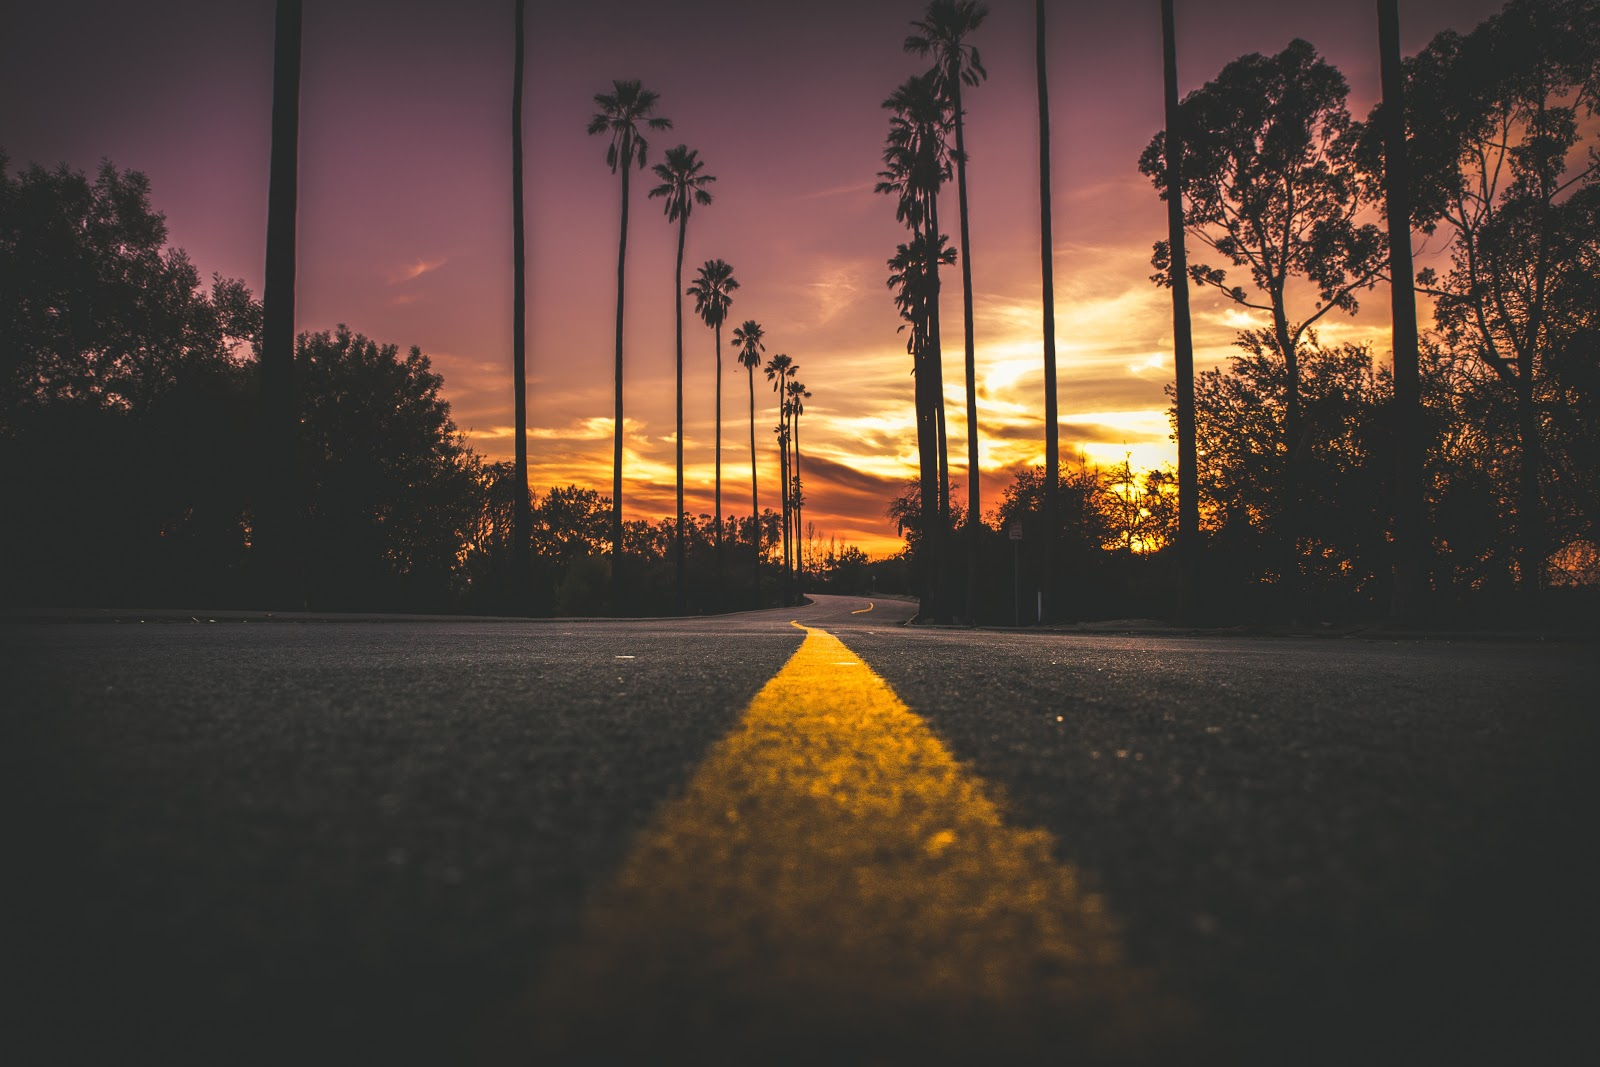 4k Wallpaper Android City Dark Road in City During Sunset